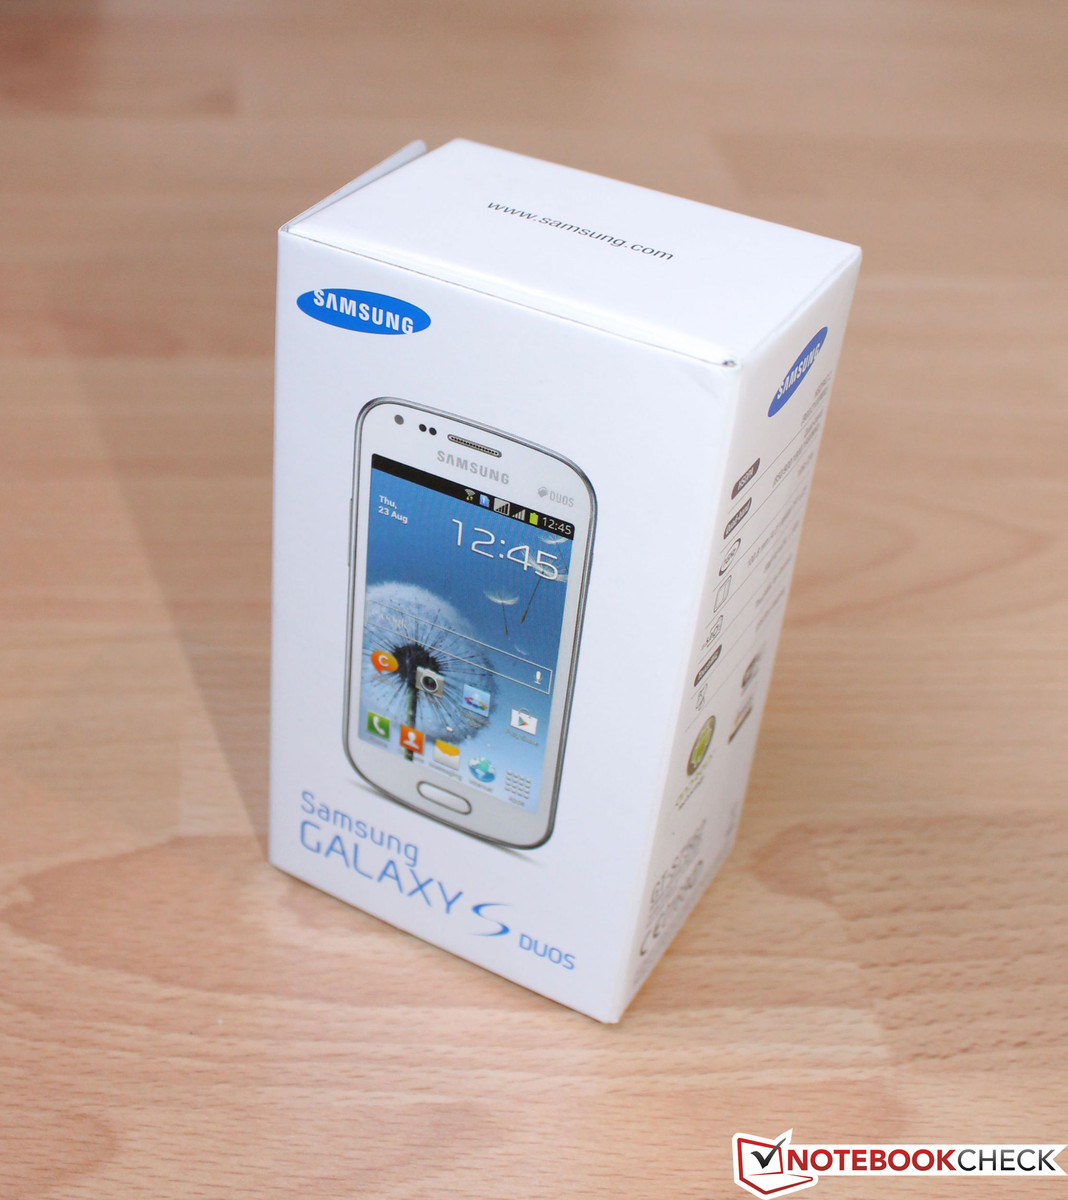 Samsung galaxy s duos s7562 full phone specifications - Samsung S Galaxy S Duos Comes In A Compact Box And